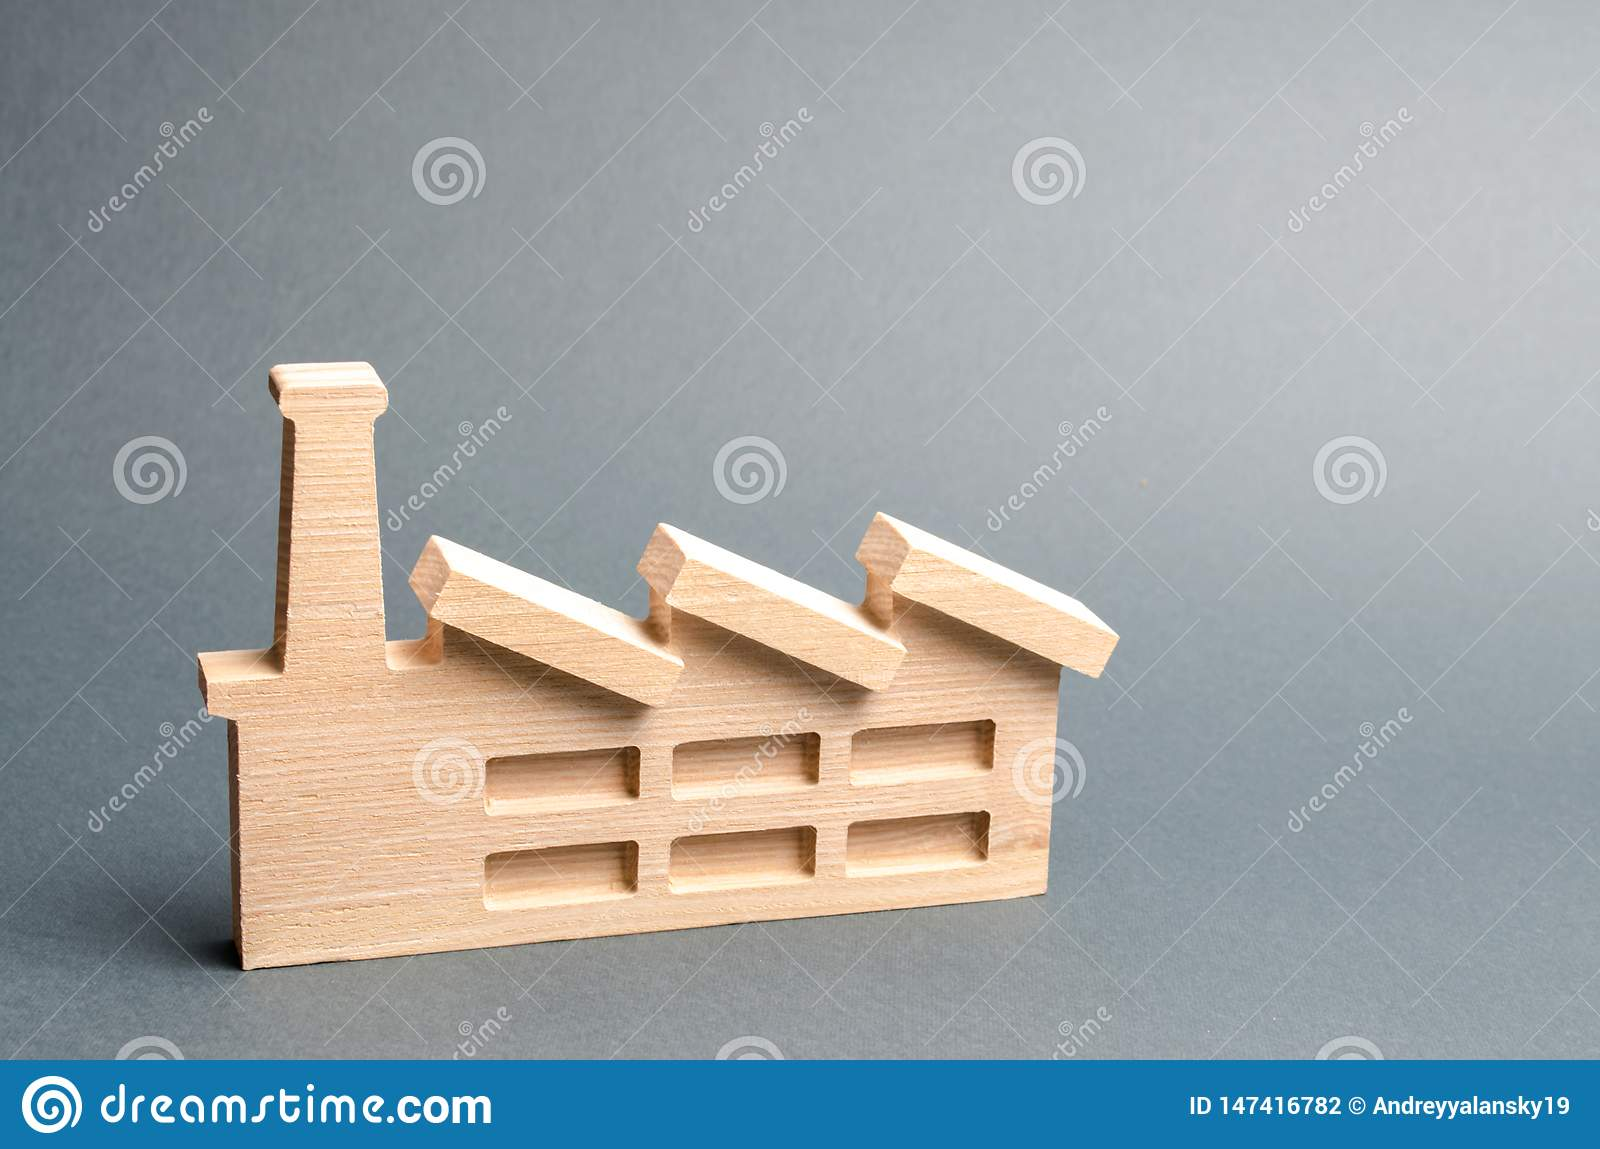 Wooden figurine of a plant or factory on a gray background. Recycling raw materials. The concept of industry and production